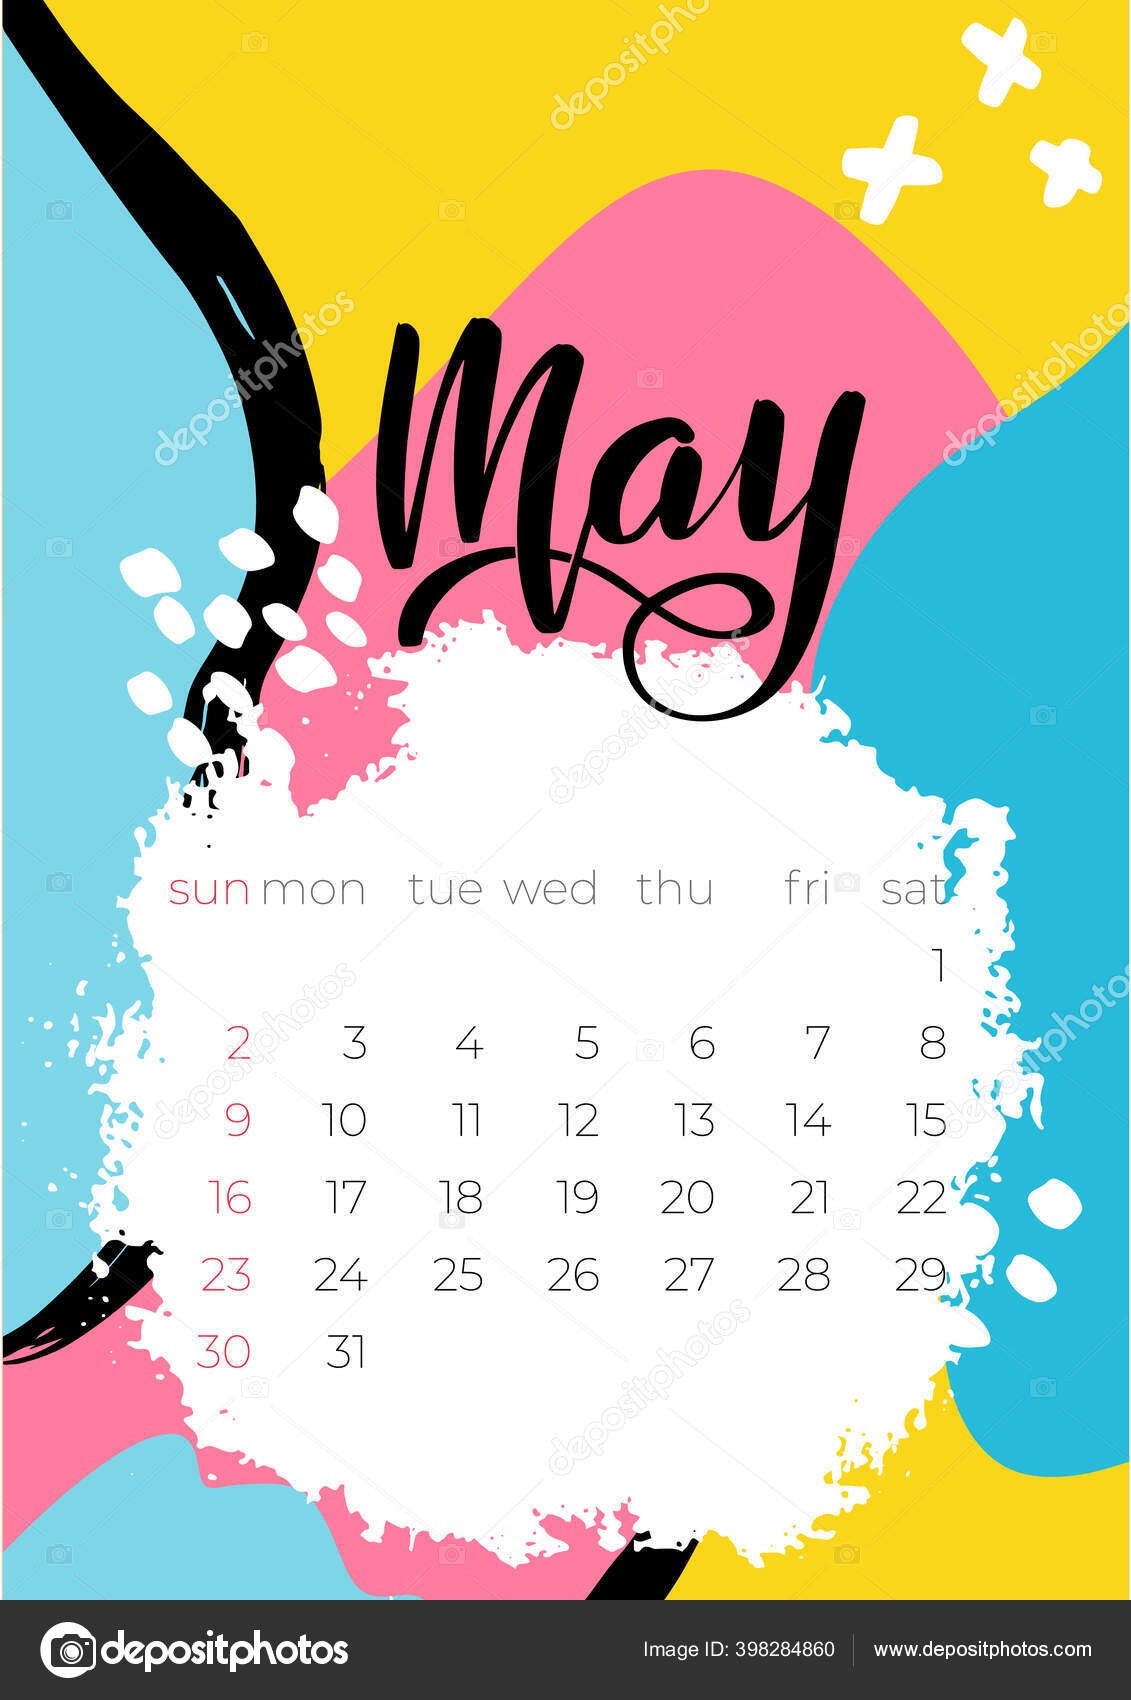 Vector Illustration May Calendar 2021 For Concept Design 398284860 pertaining to Depo Chart 2021